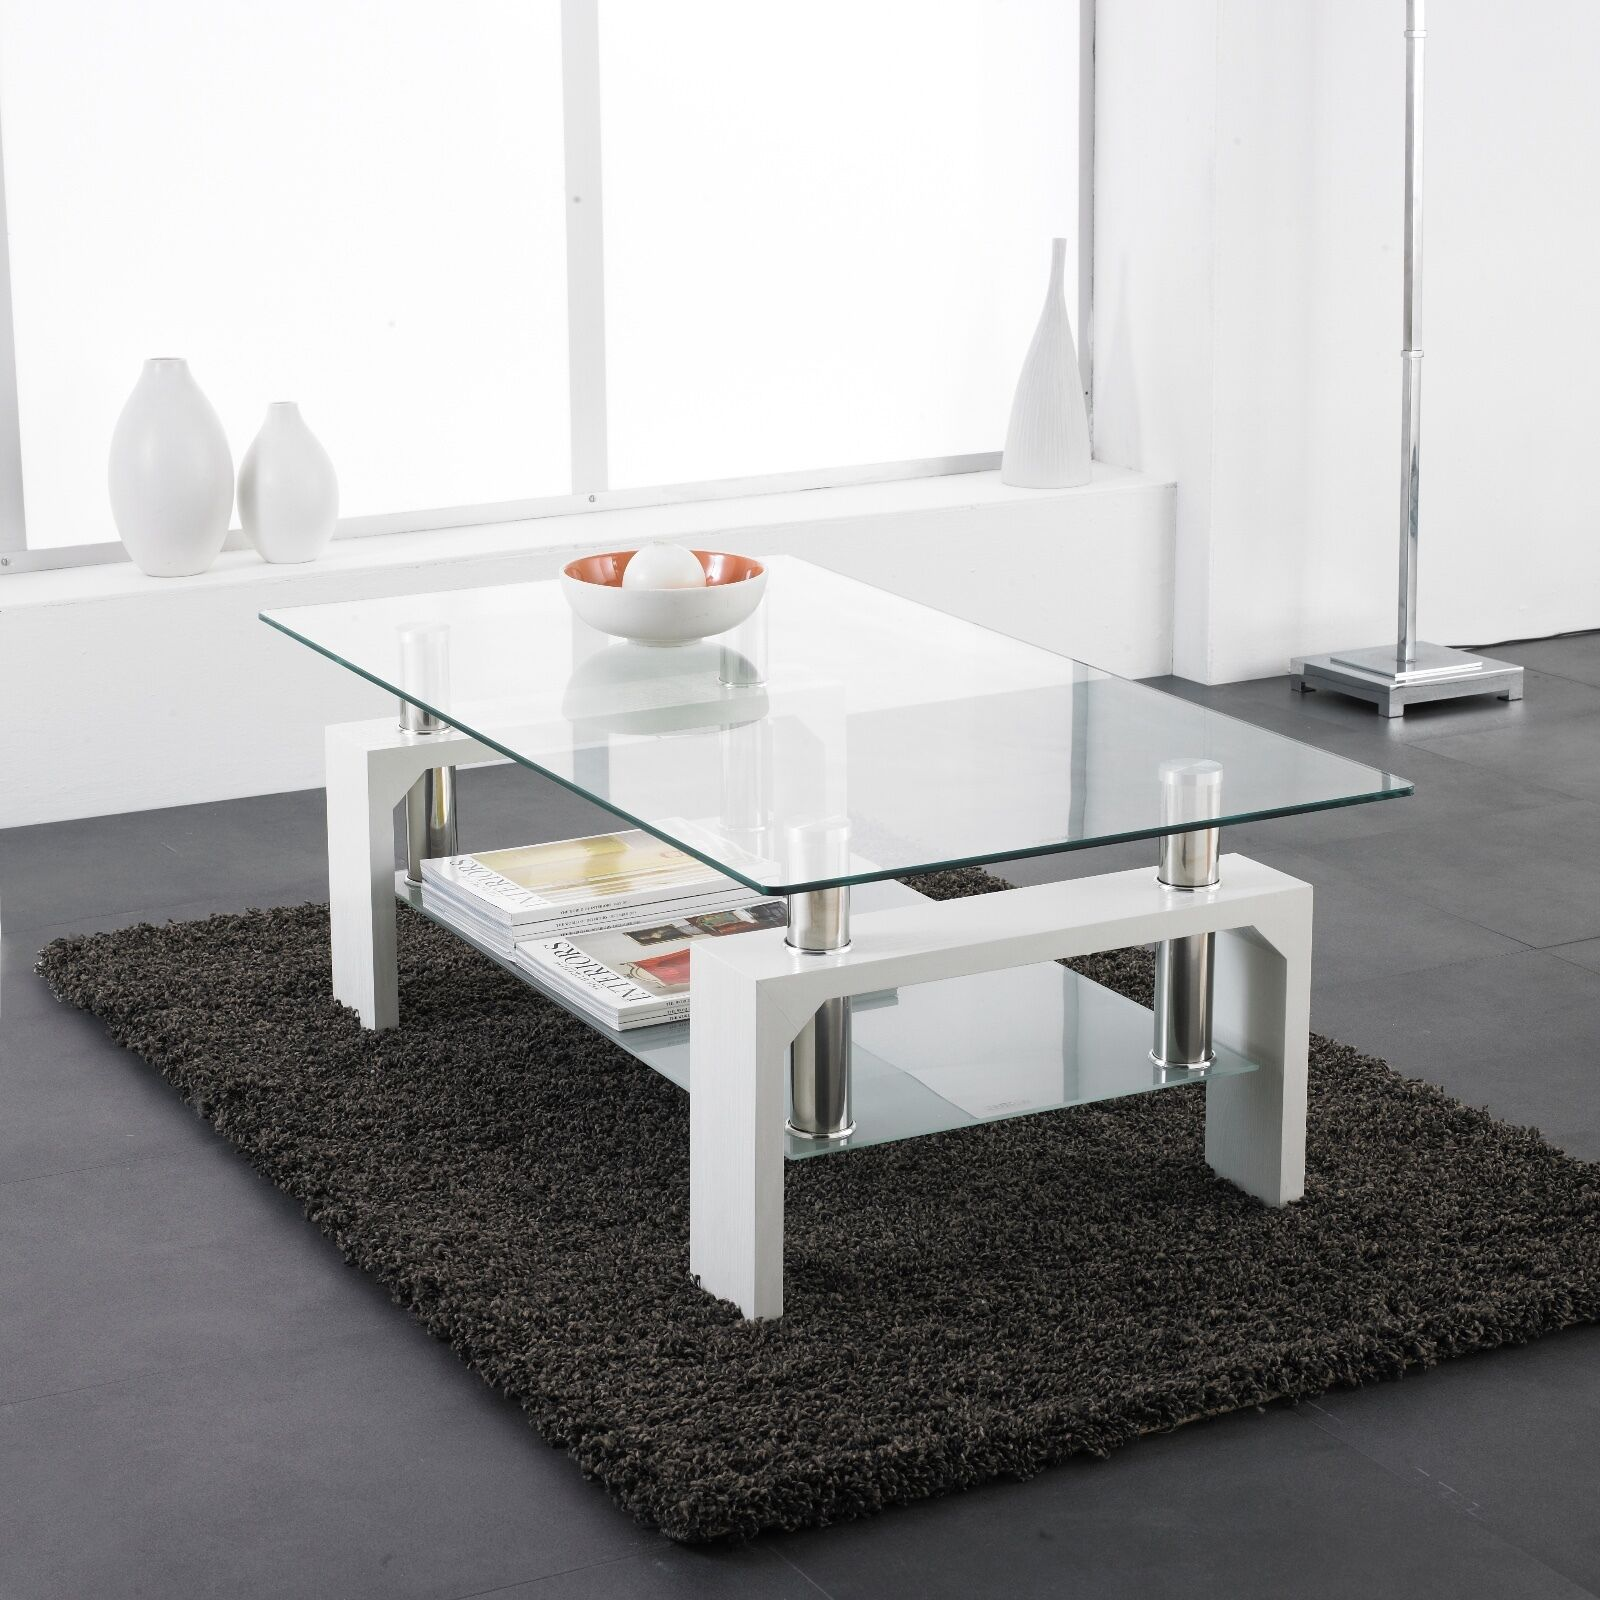 Marble Coffee Table Ebay Uk: White Modern Rectangle Glass & Chrome Living Room Coffee